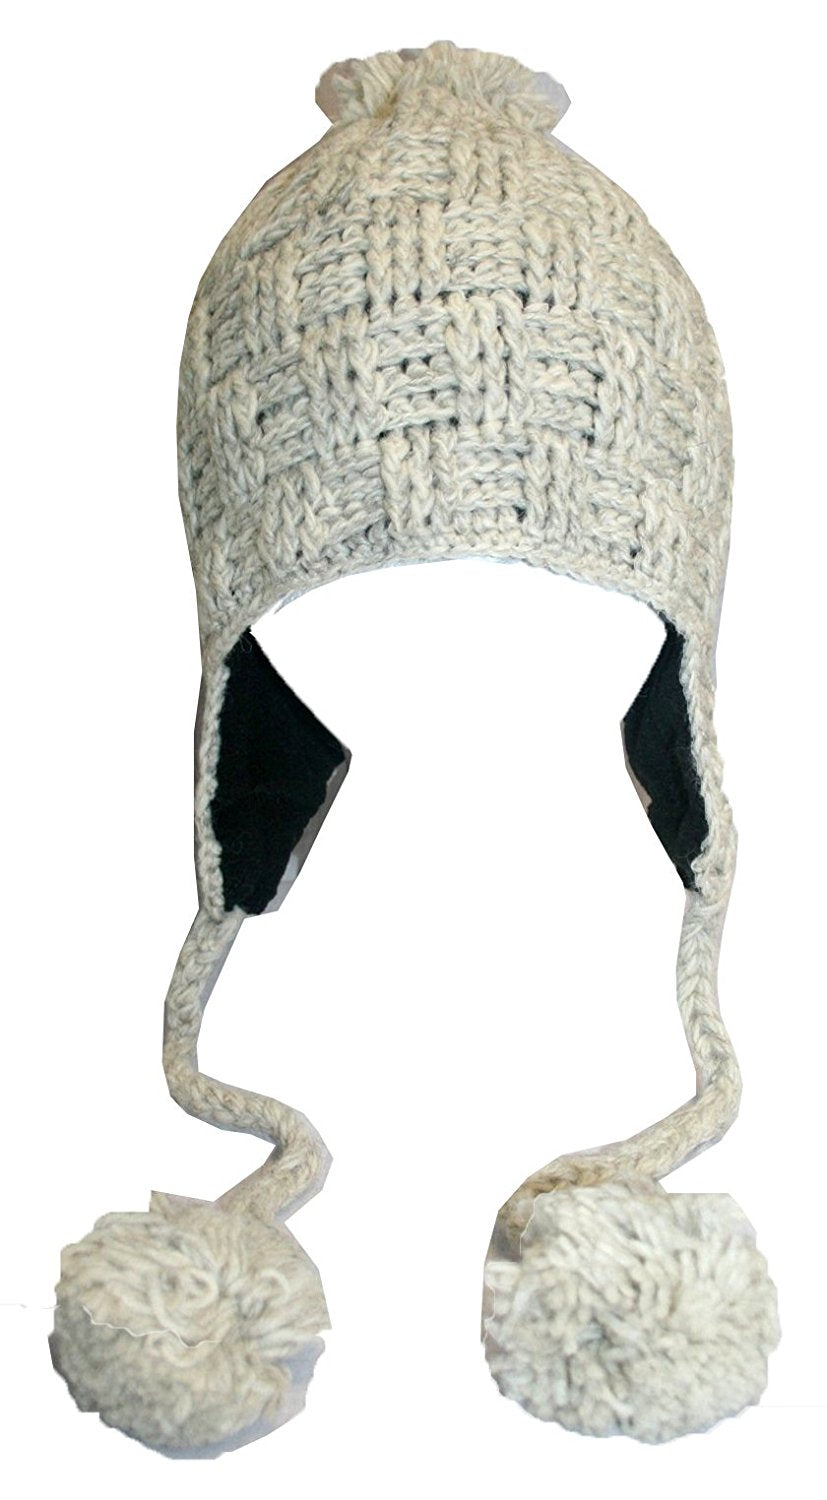 Highland Wool Knit Beanie Fleece Earflap Beanies - Agan Traders, 1411 CR